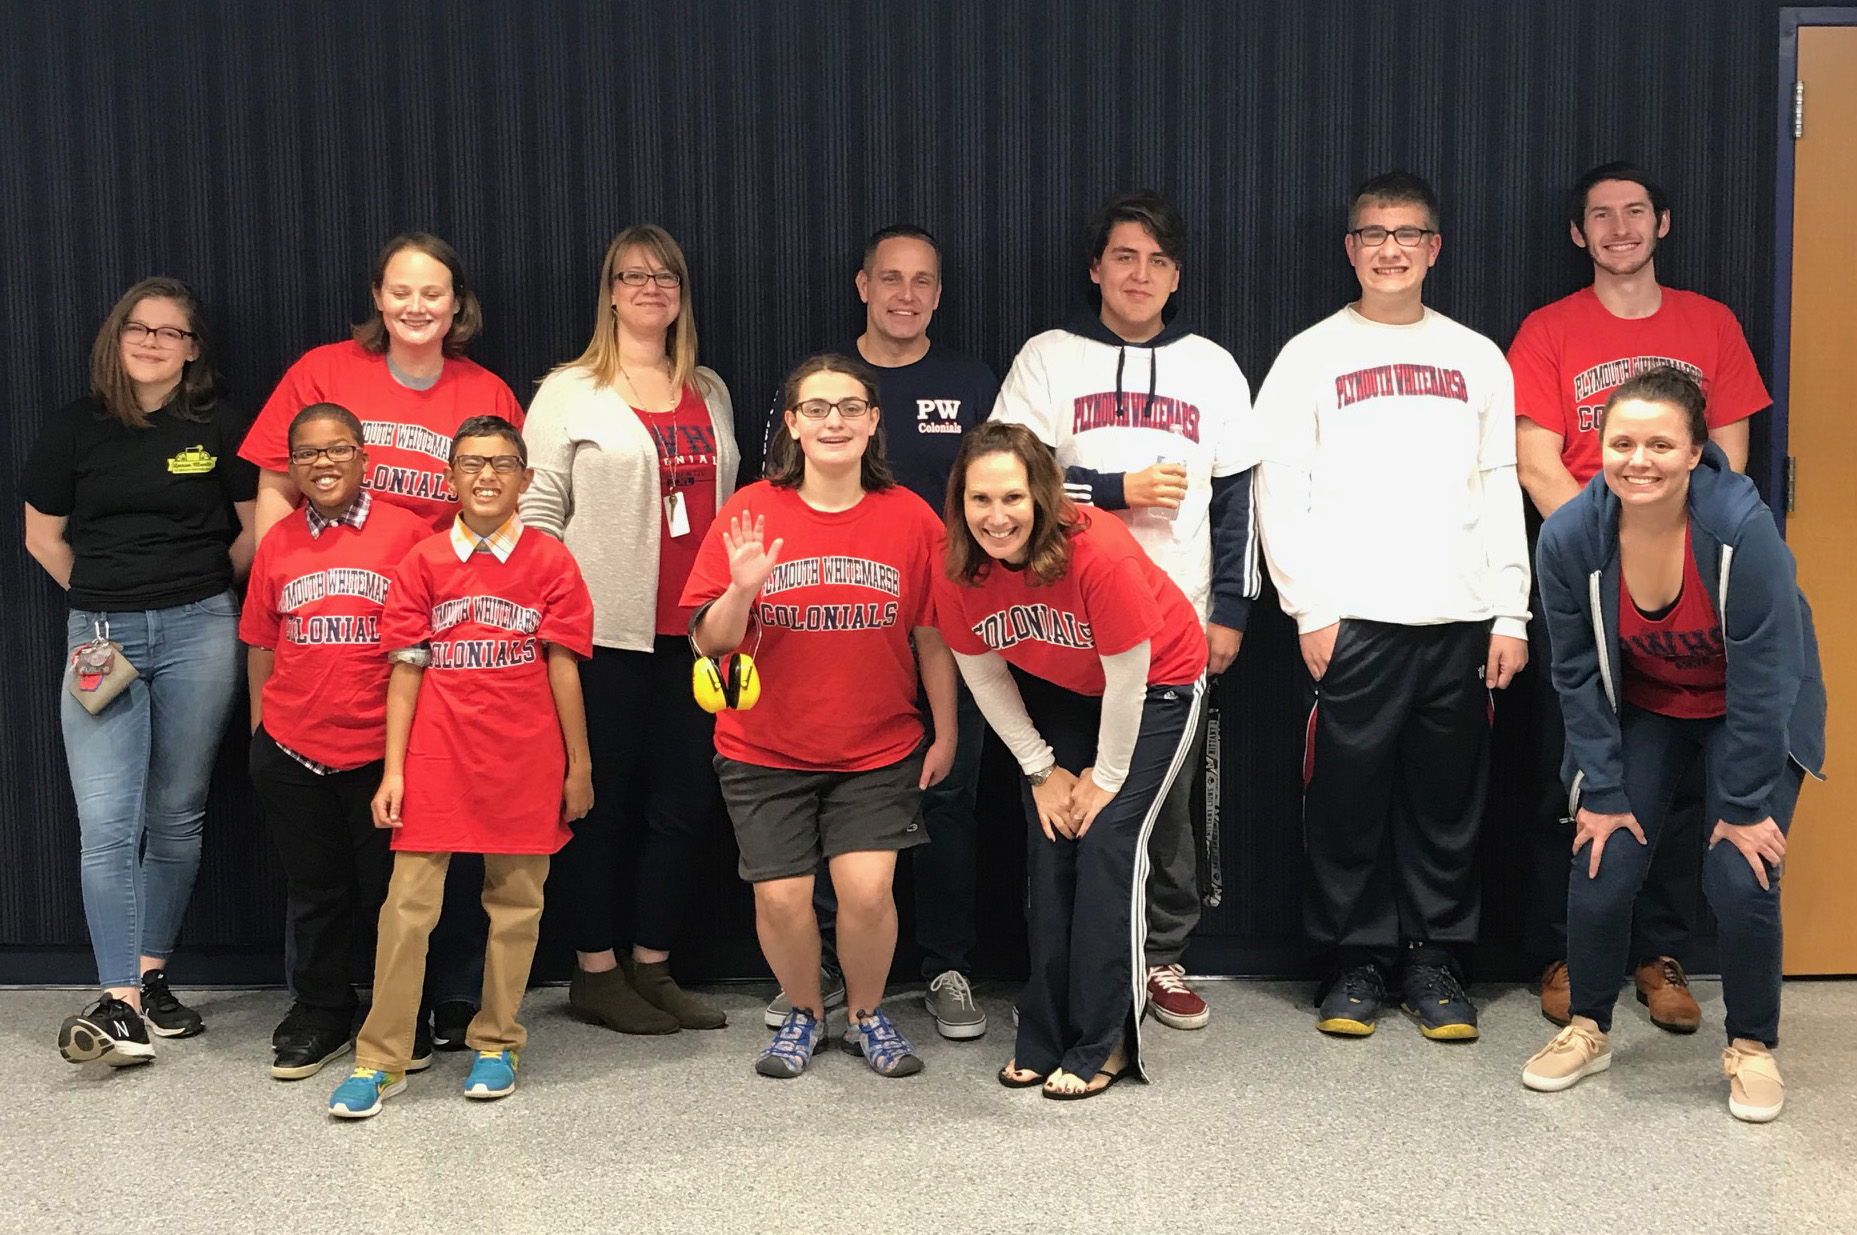 Students and teachers wearing Plymouth Whitemarsh High School shirts